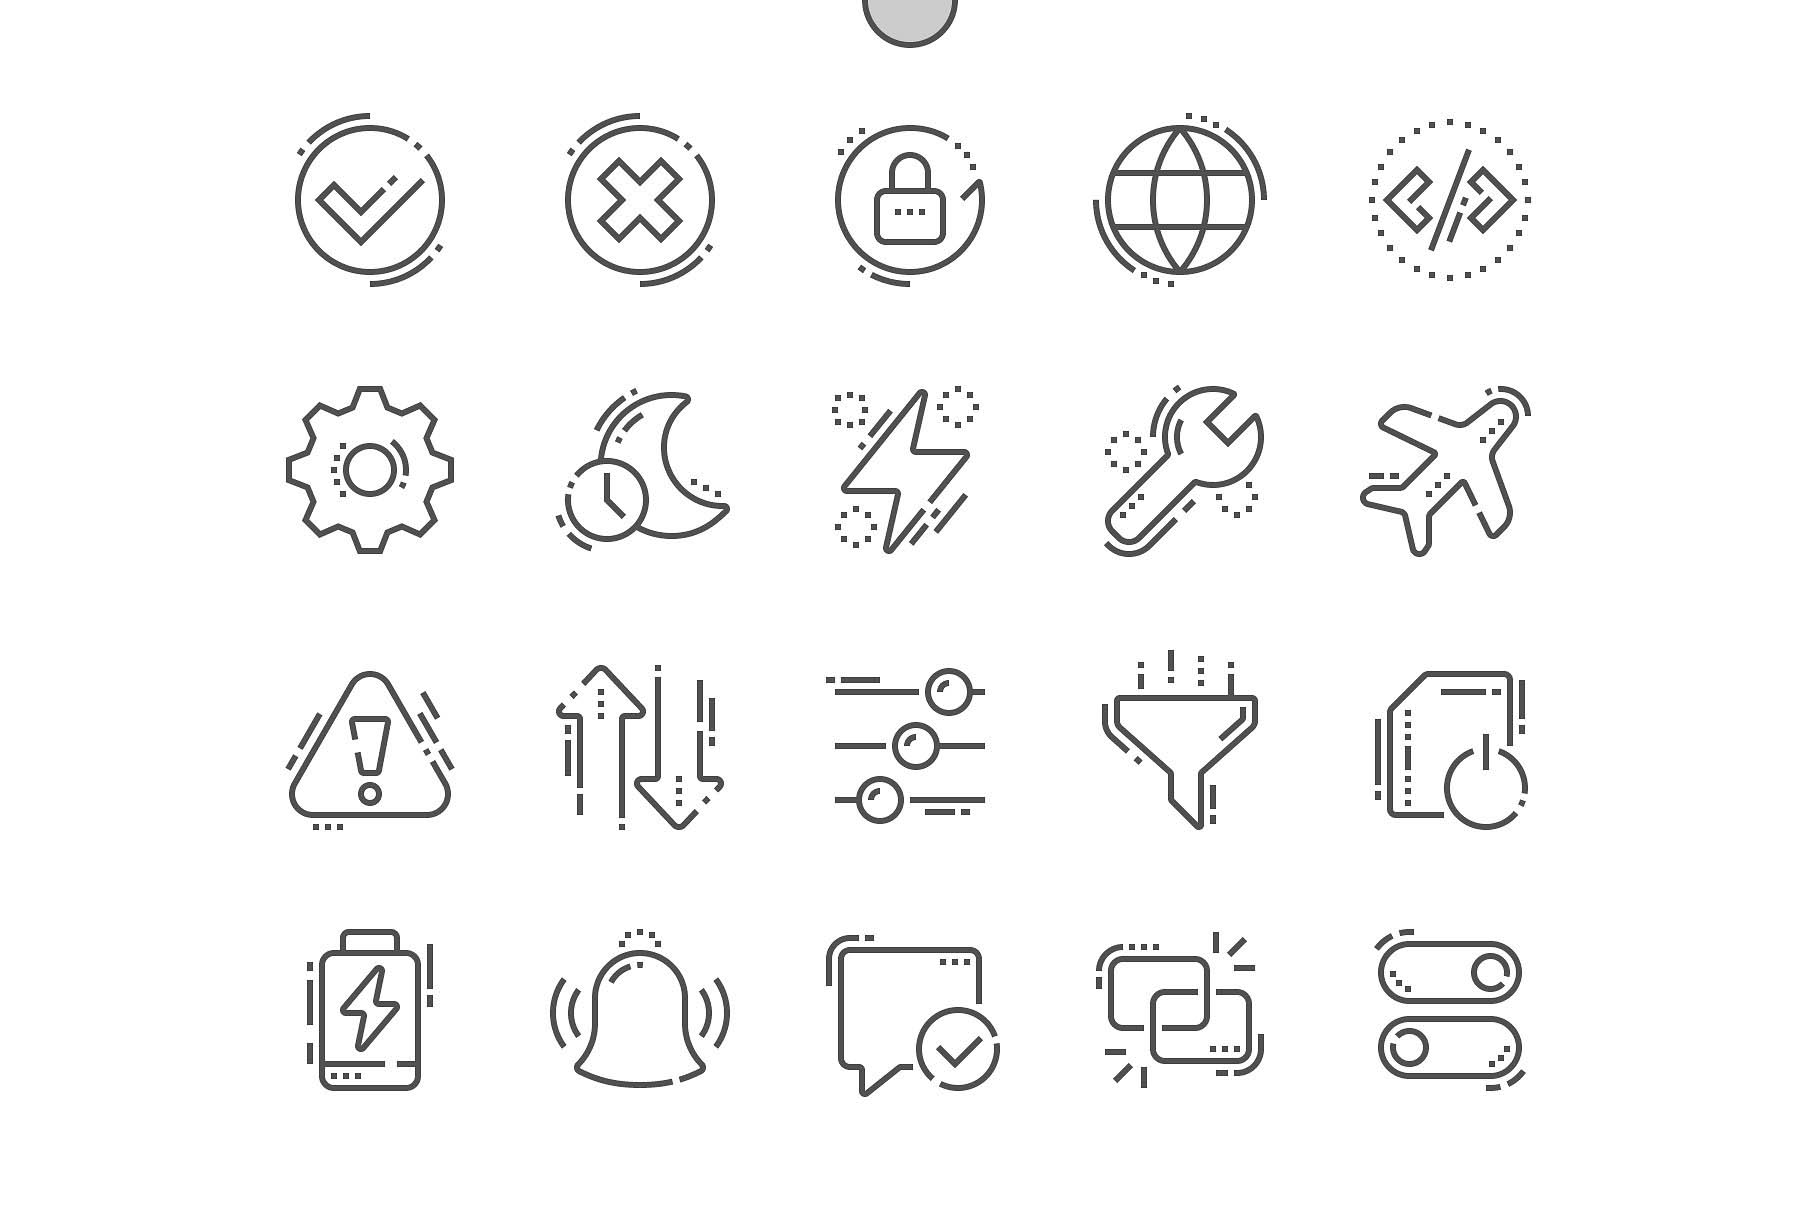 系统设置图标 Settings Line Icons